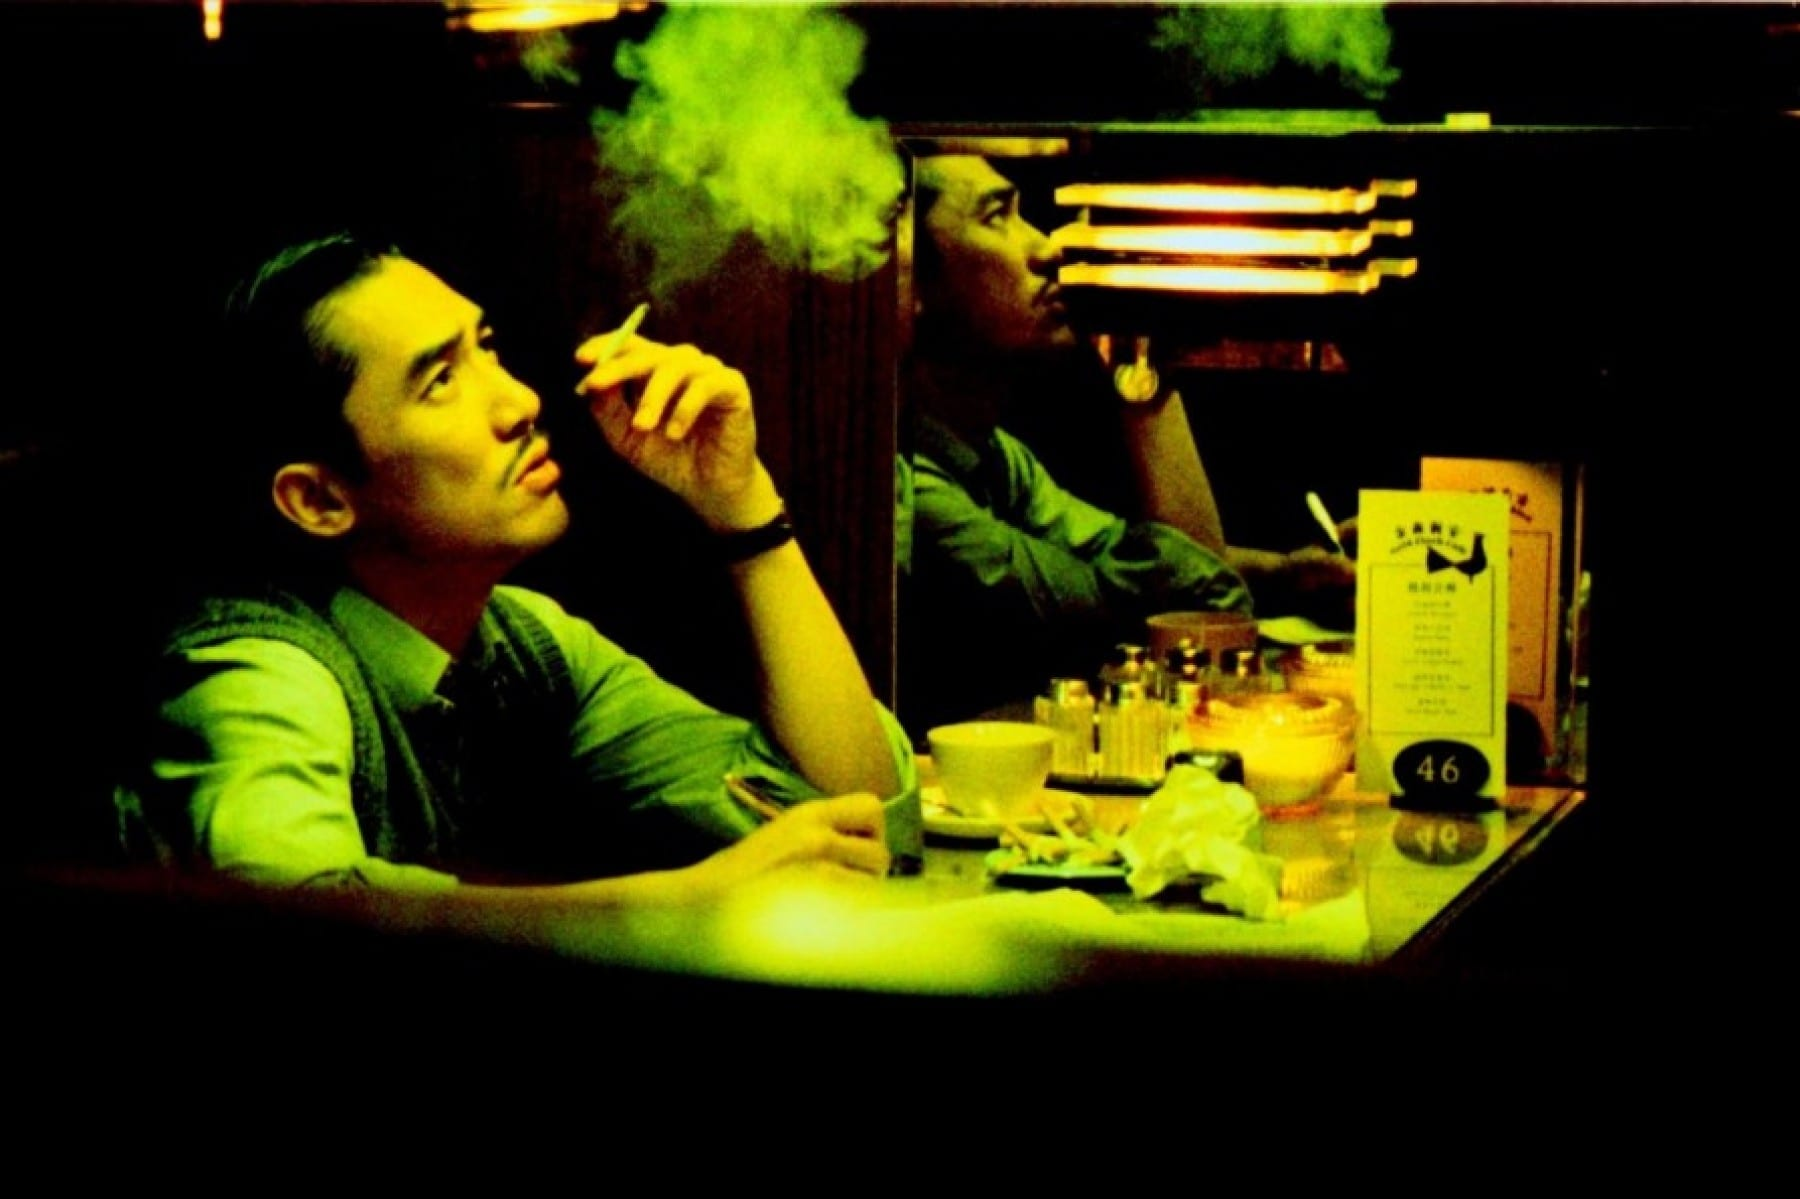 Tony Leung Chiu Wai as Chow Mo Wan - On the set of 2046 by Wong Kar-Wai Wing Shya